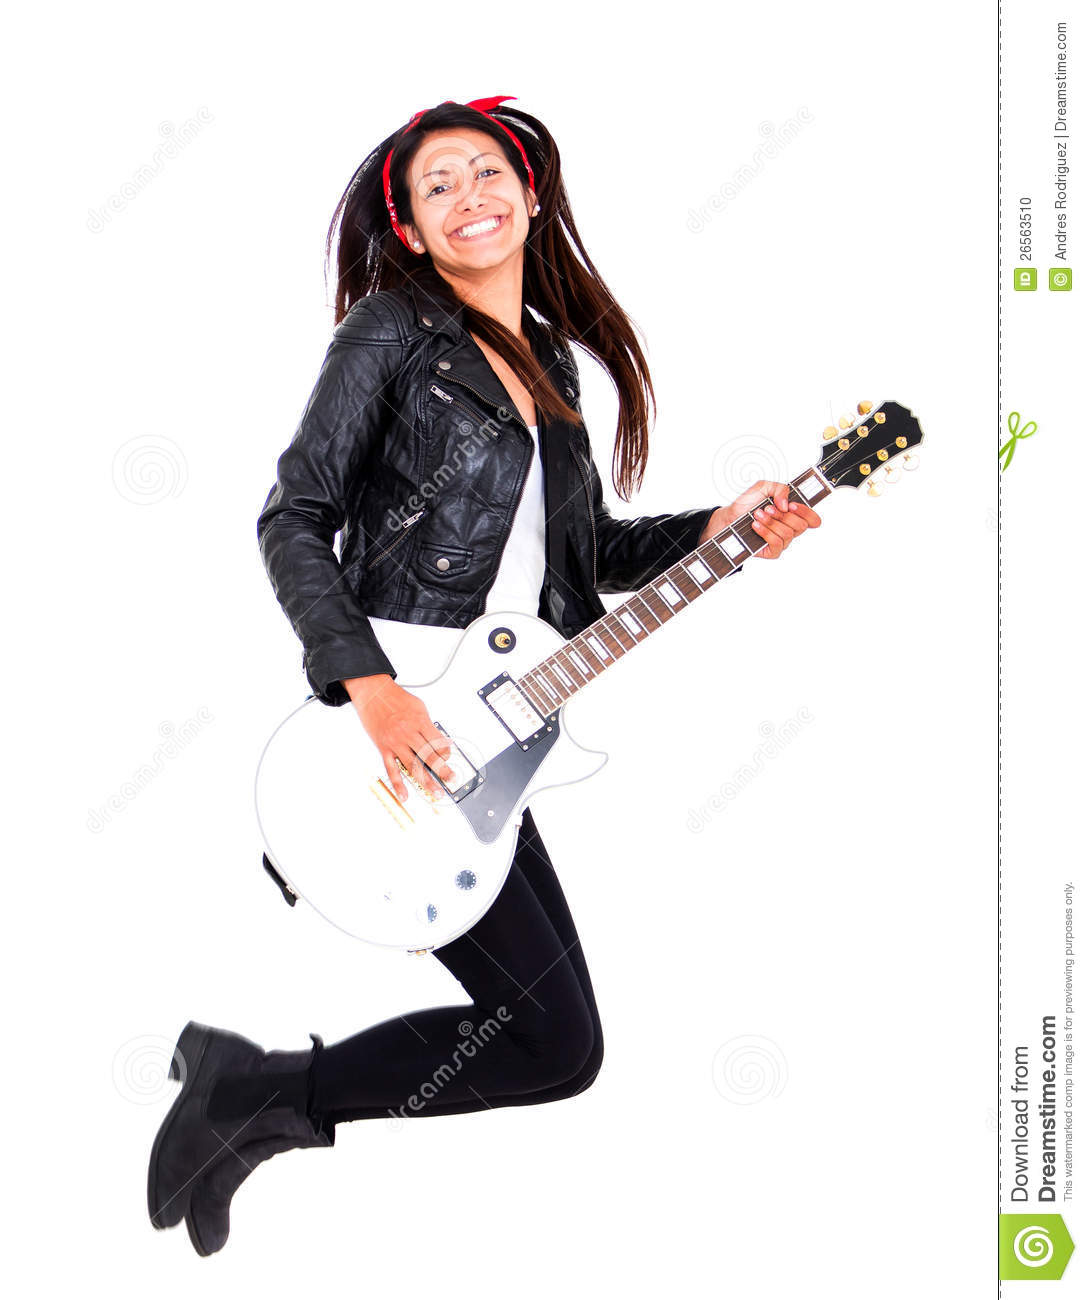 Female guitar player jumping - isolated over a white background.